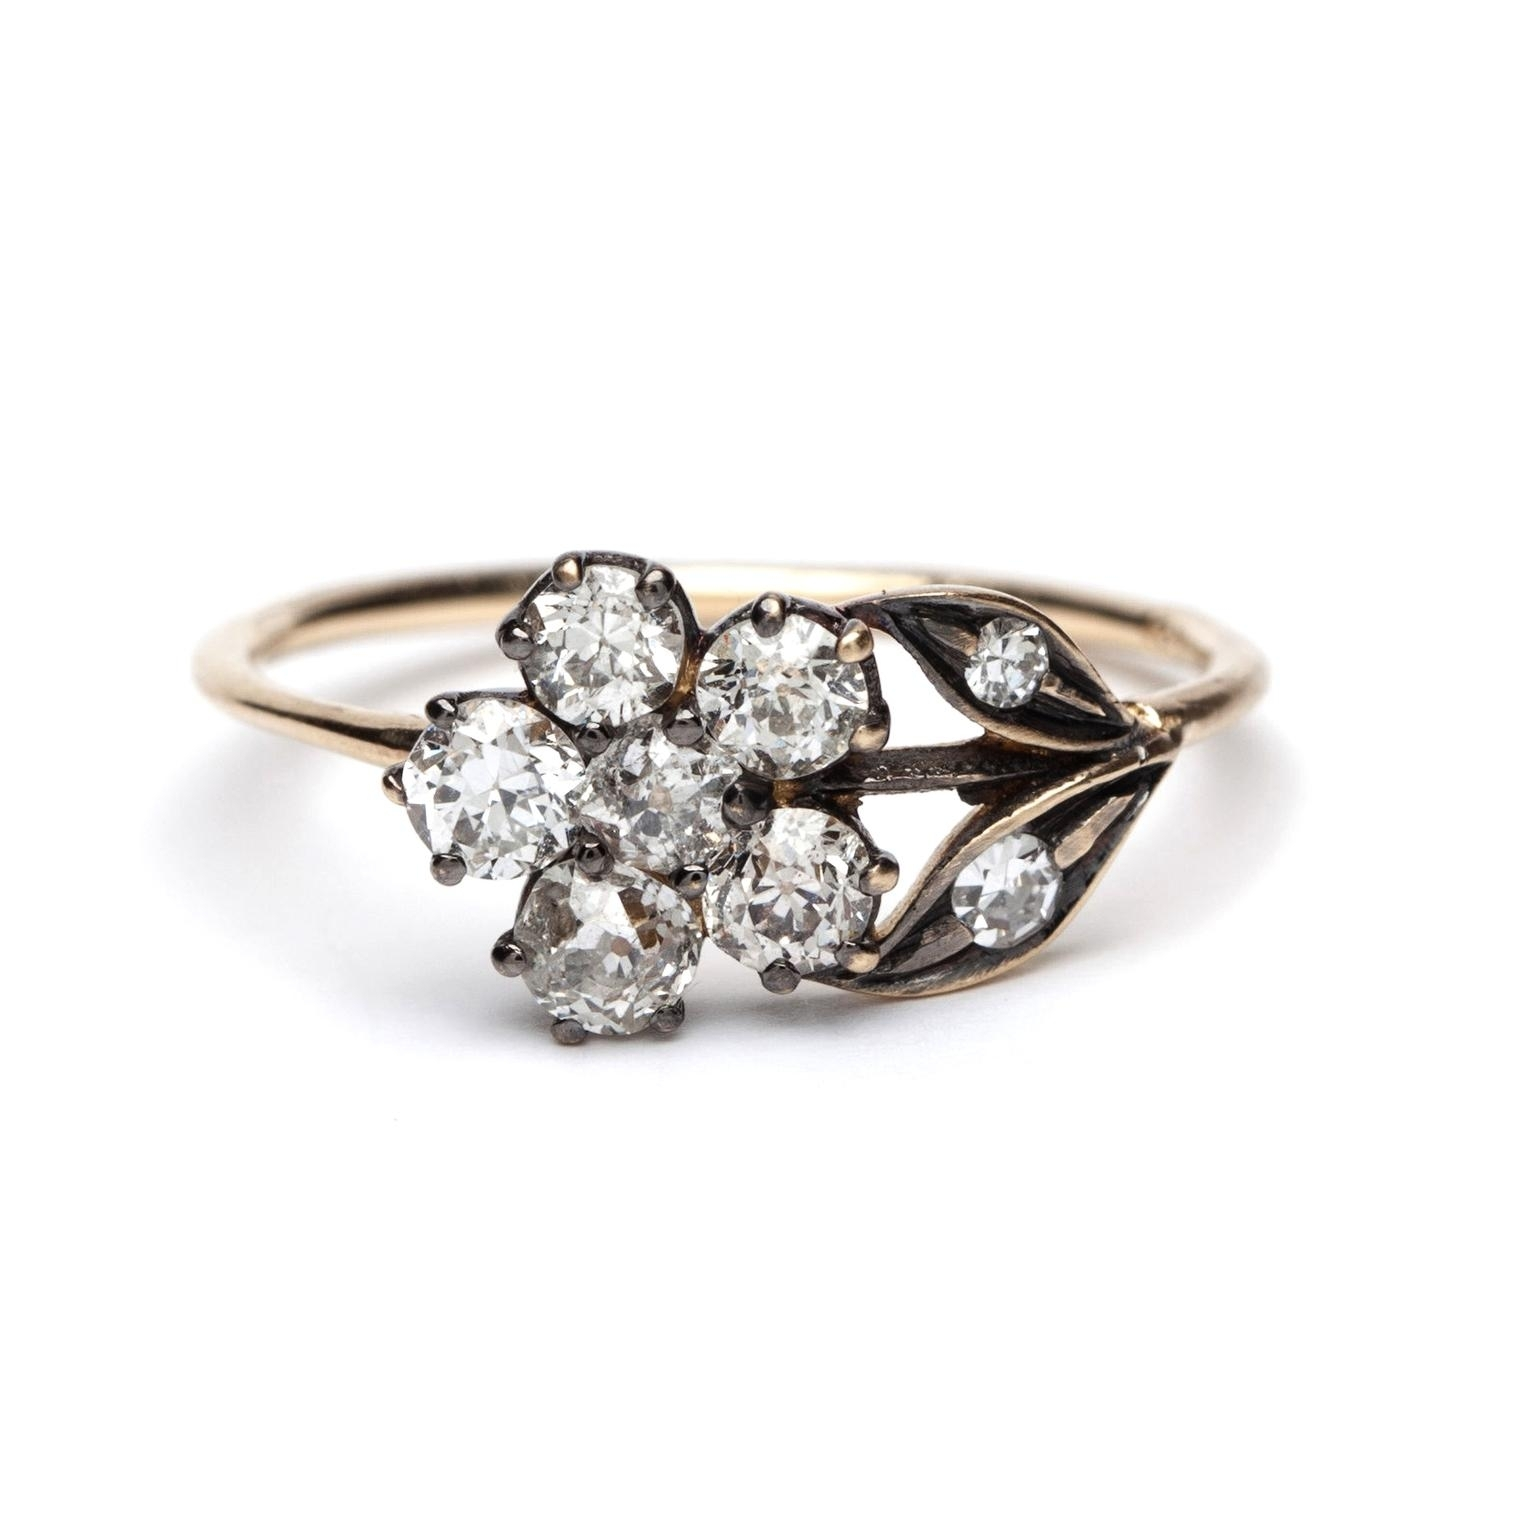 Antique Flower Diamond Engagement Ring | Sofia Kaman | The Jewellery Pertaining To Current Antique Style Diamond Engagement Rings (Gallery 3 of 15)